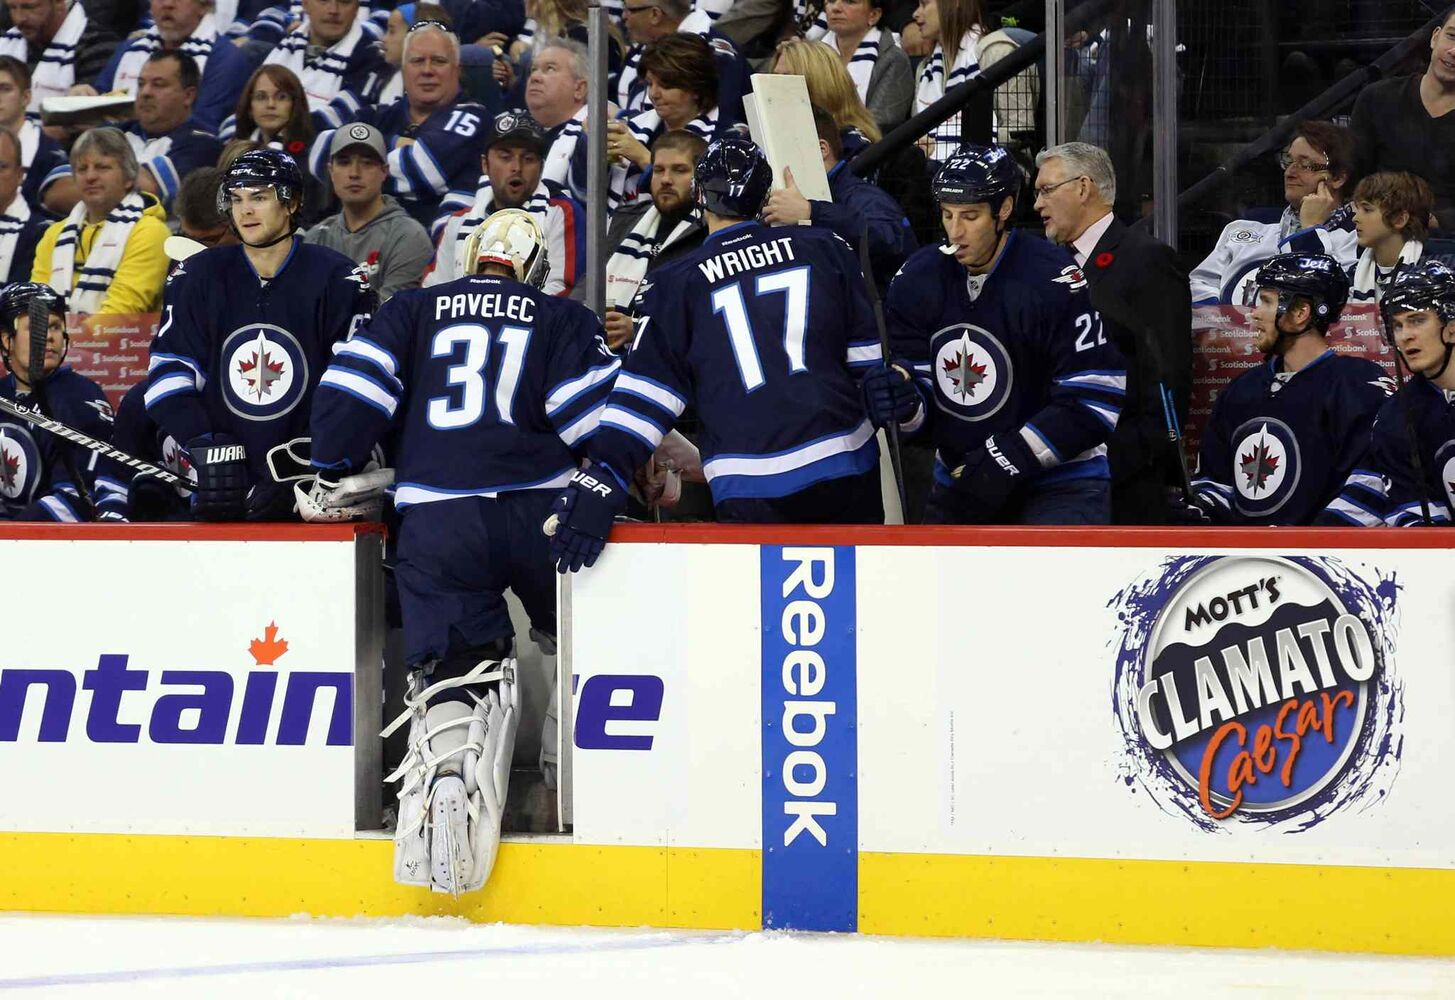 Winnipeg Jets goalie Ondrej Pavelec heads to the bench after being replaced during the second period. (USA Today Sports / Reuters)